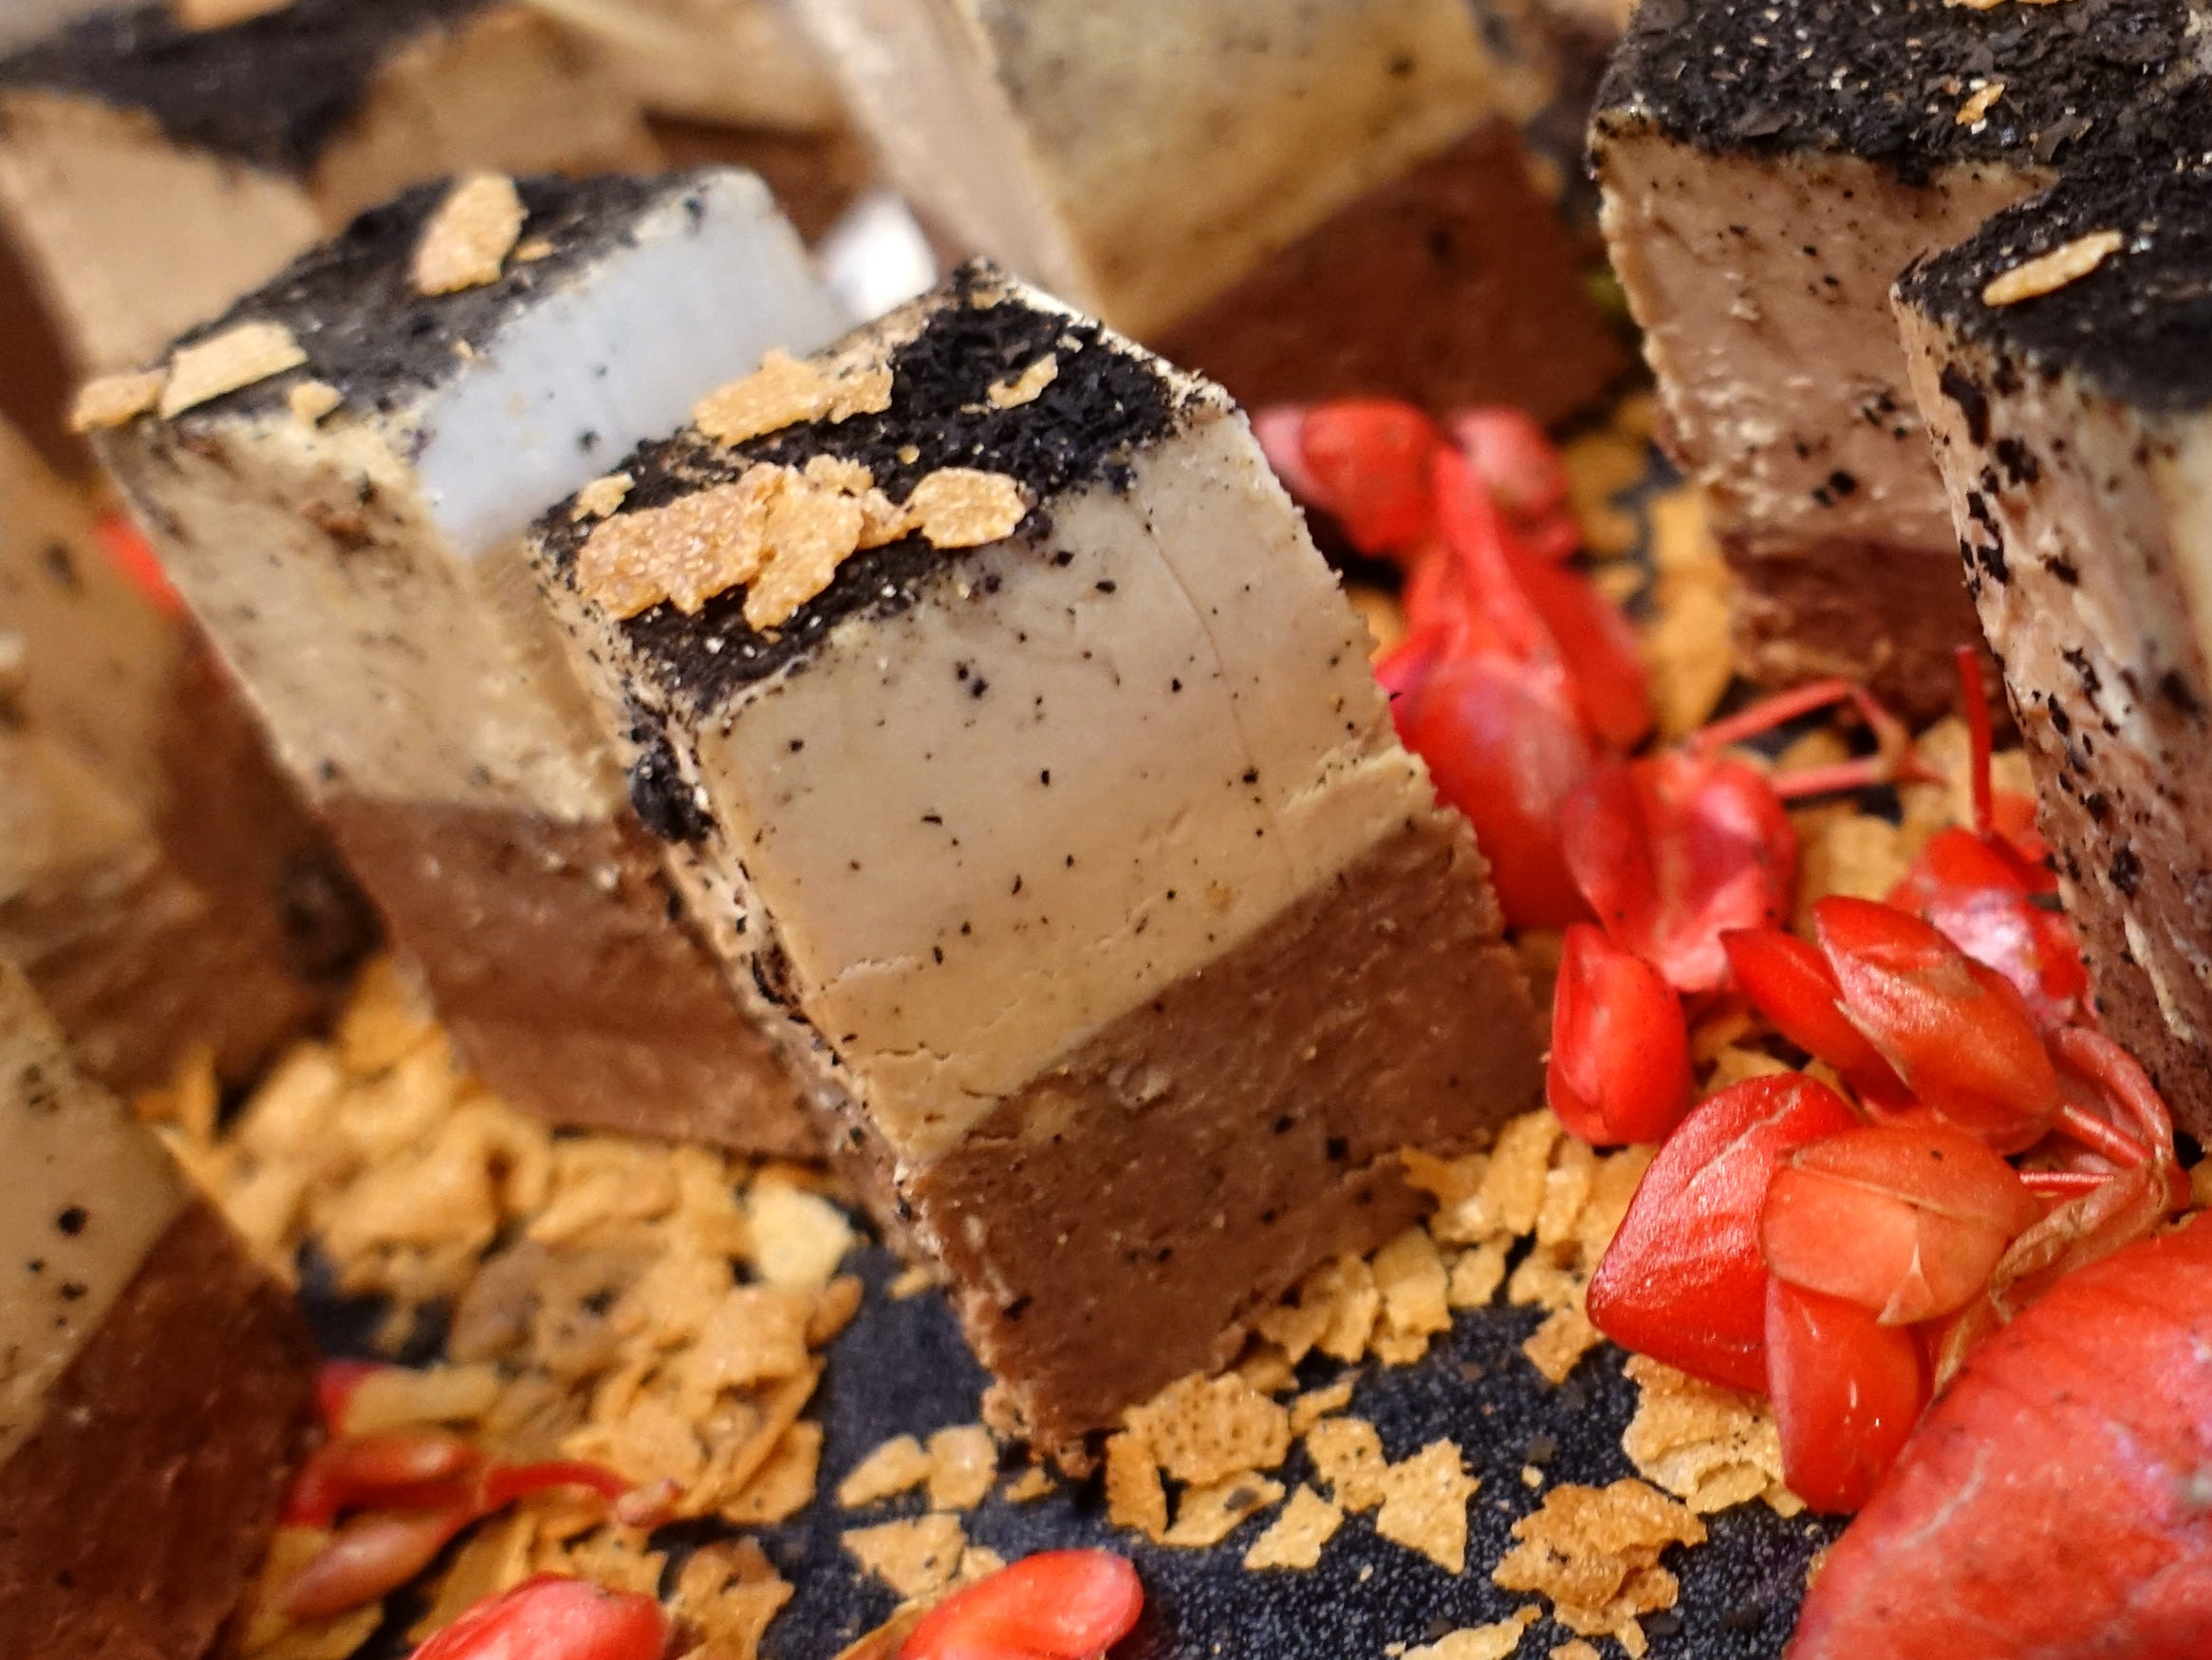 'Kit Kat' of foie gras with espresso chocolate, foie gras mousse and portobello powder from Geordie's Restaurant at the Wrigley Mansion at the 2019 Devour Culinary Classic at the Desert Botanical Garden in Phoenix.